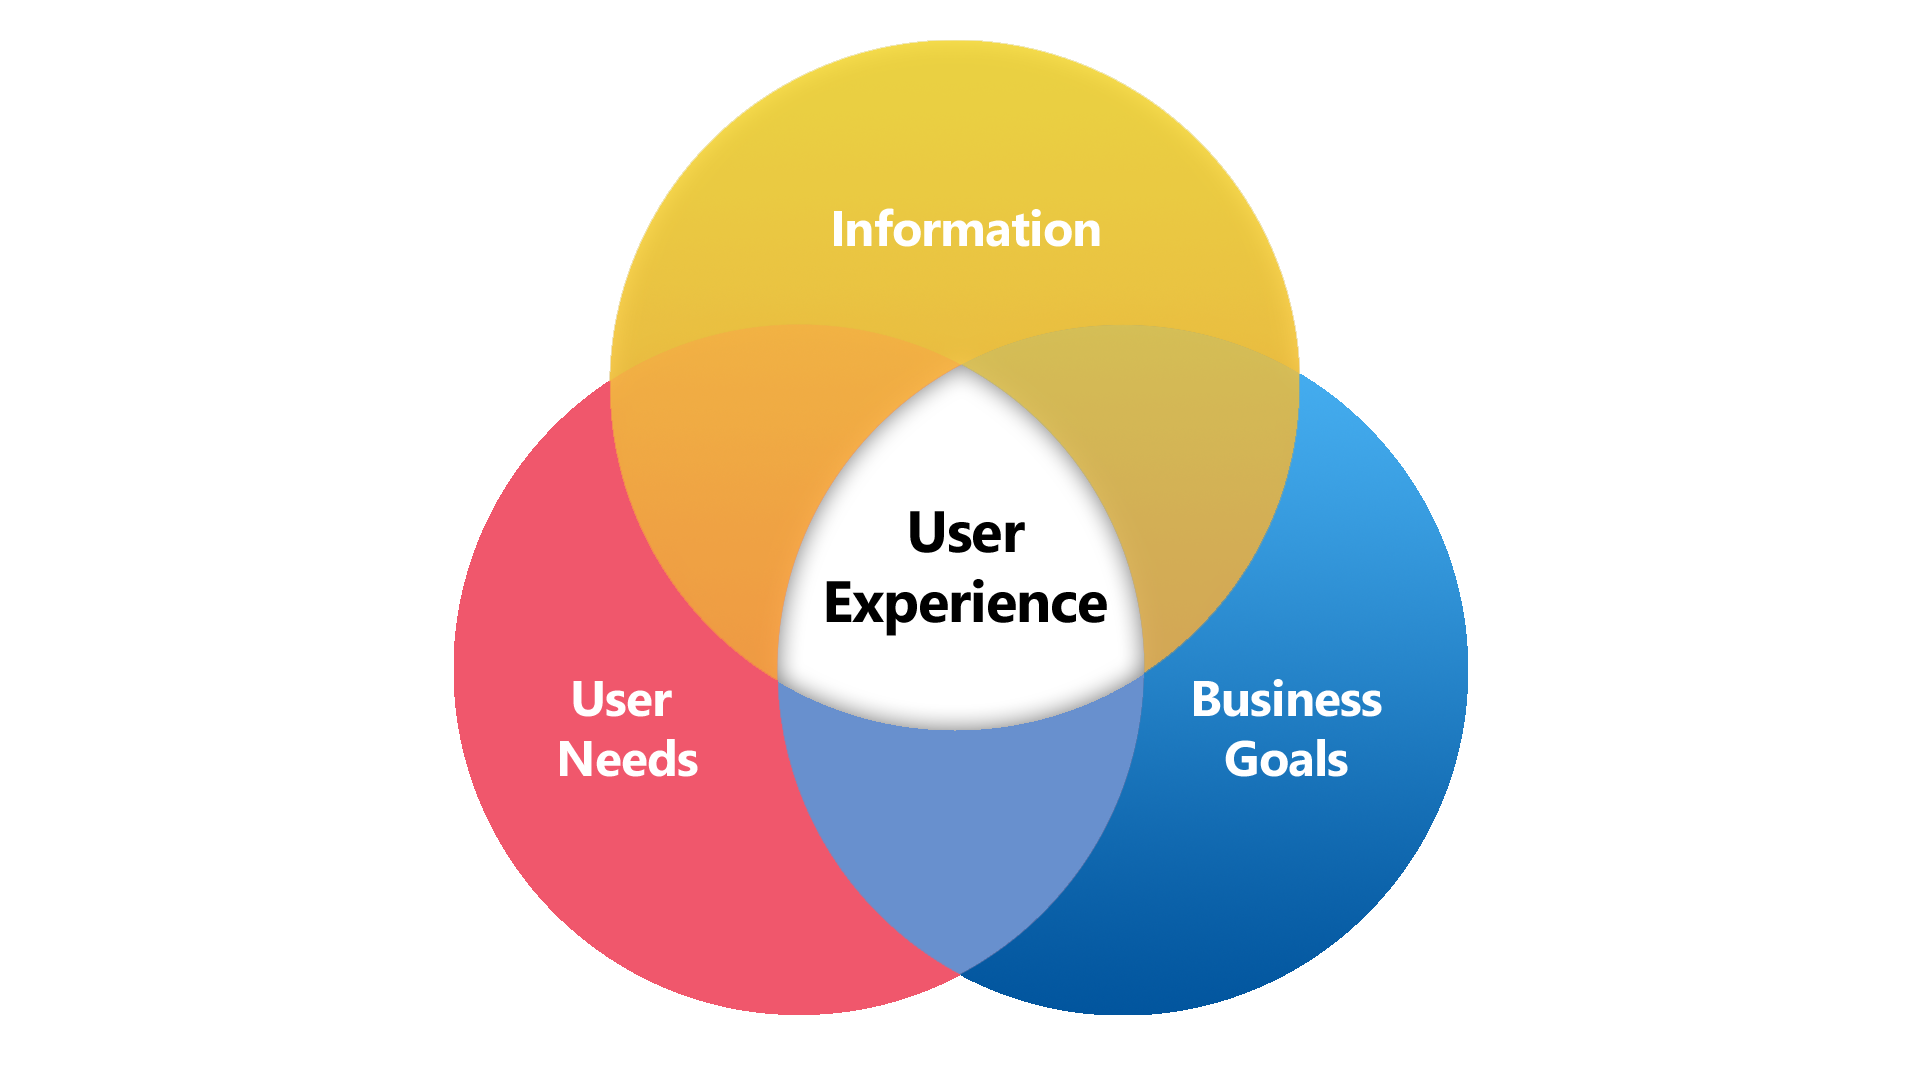 user experience | SEO in 2107